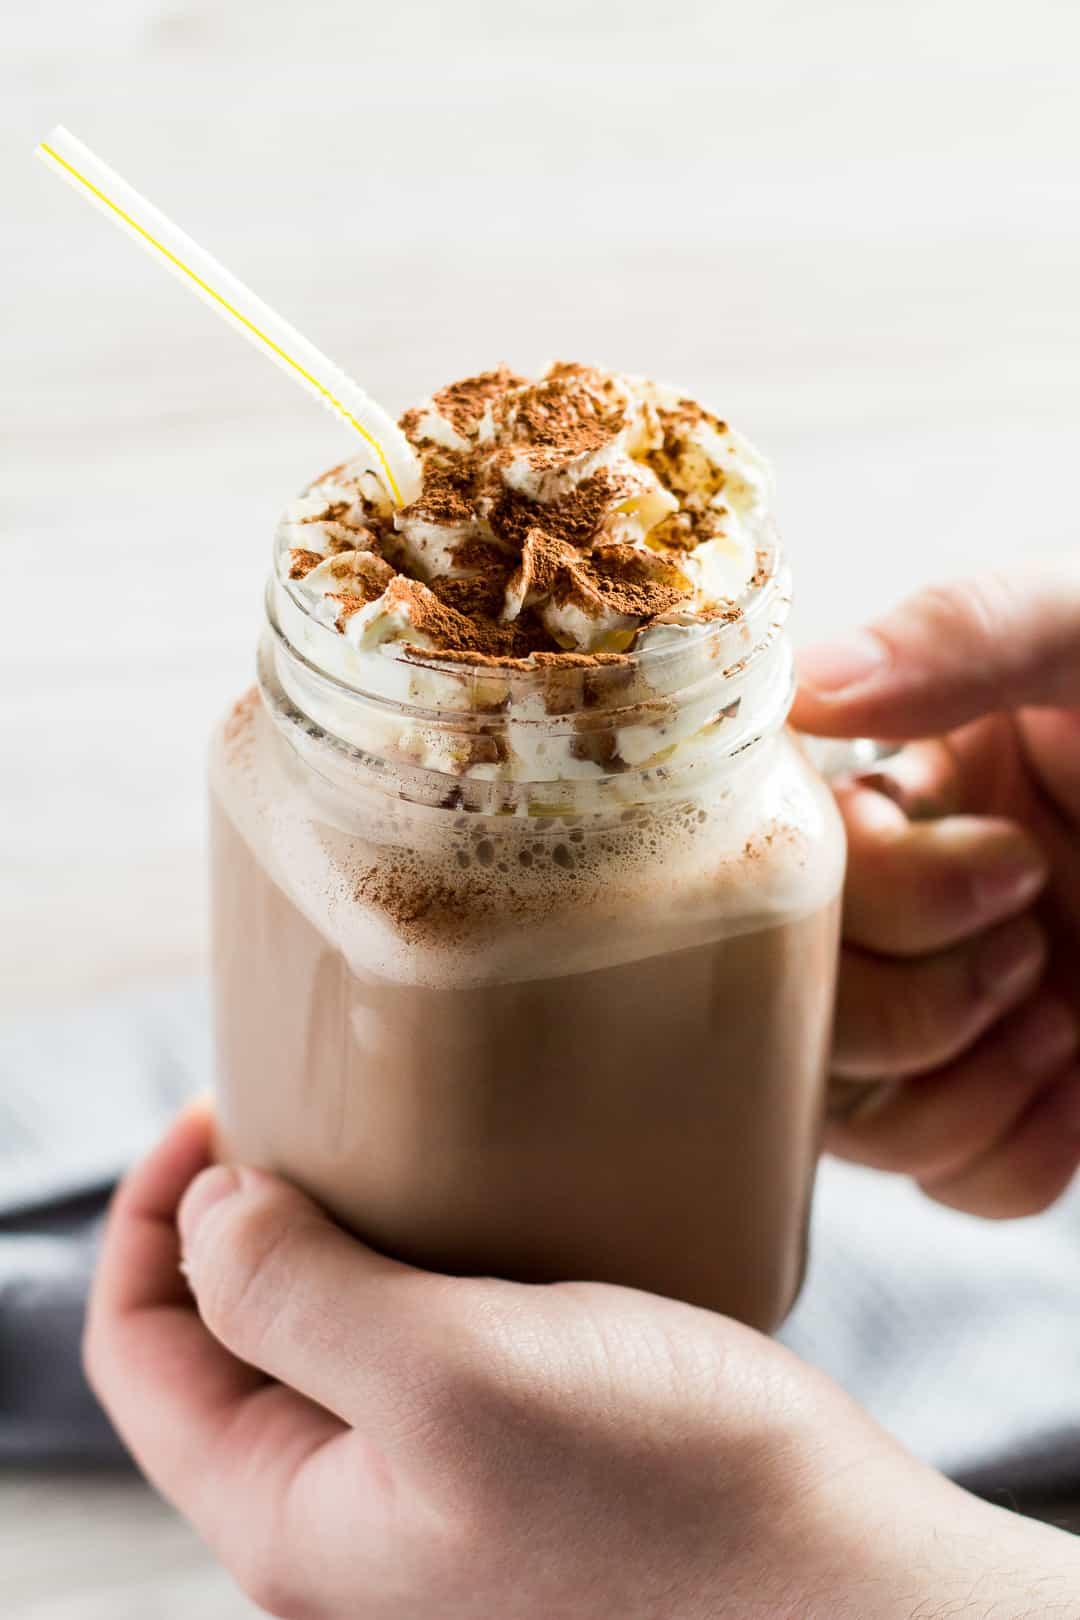 Chocolate Nesquik Milkshake topped with whipped cream in a glass mason jar being held by hand.